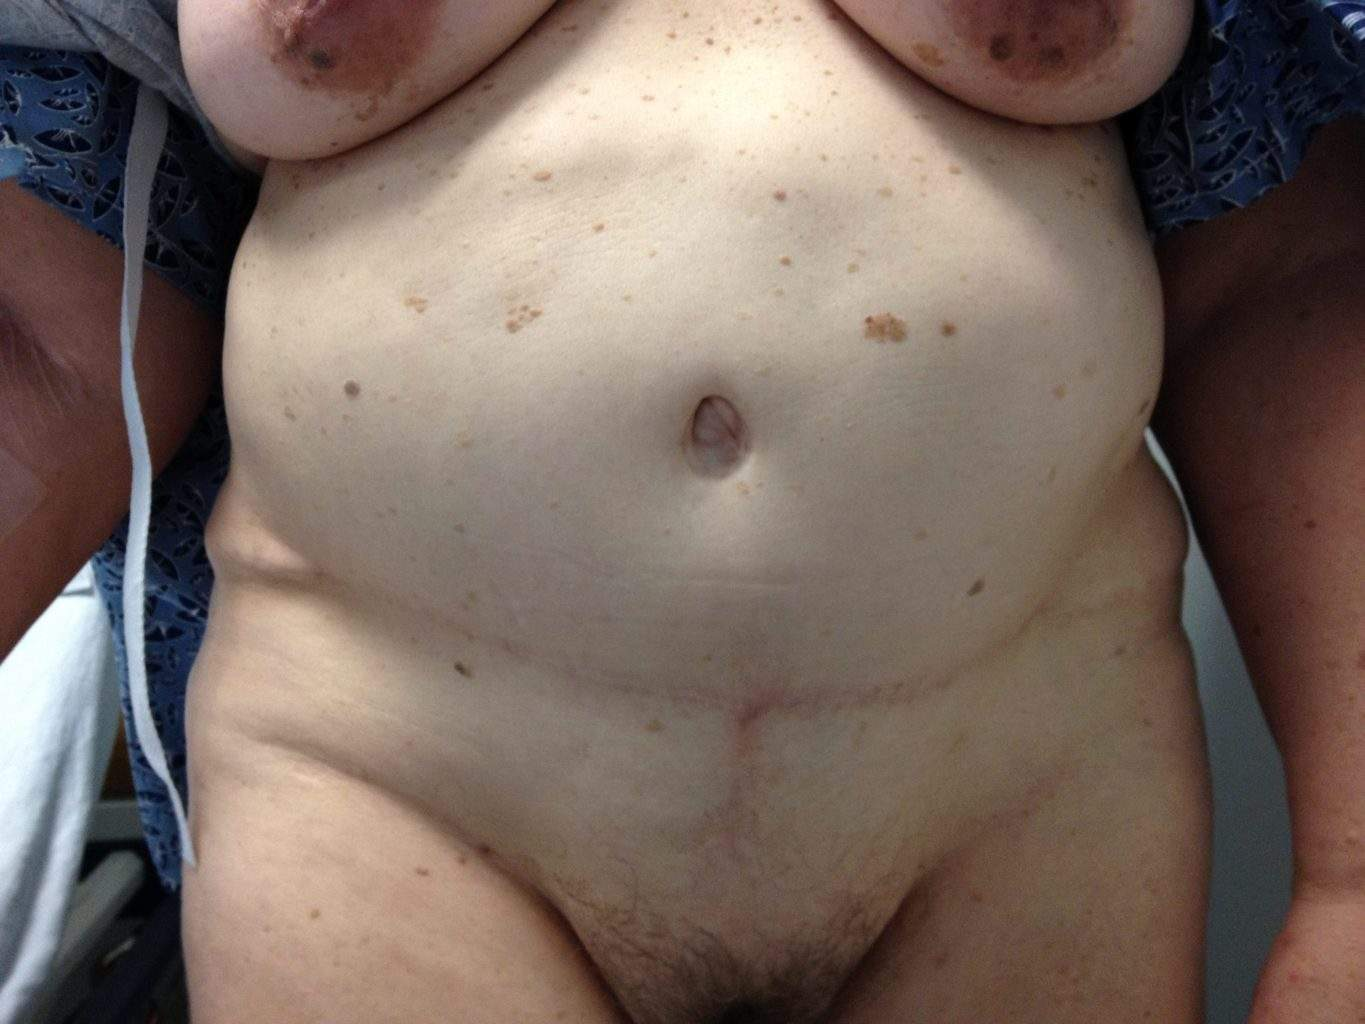 image of preop abdomioplasty tummy tuck mommy make over surgery to be revised by Dr. O'Sullivan